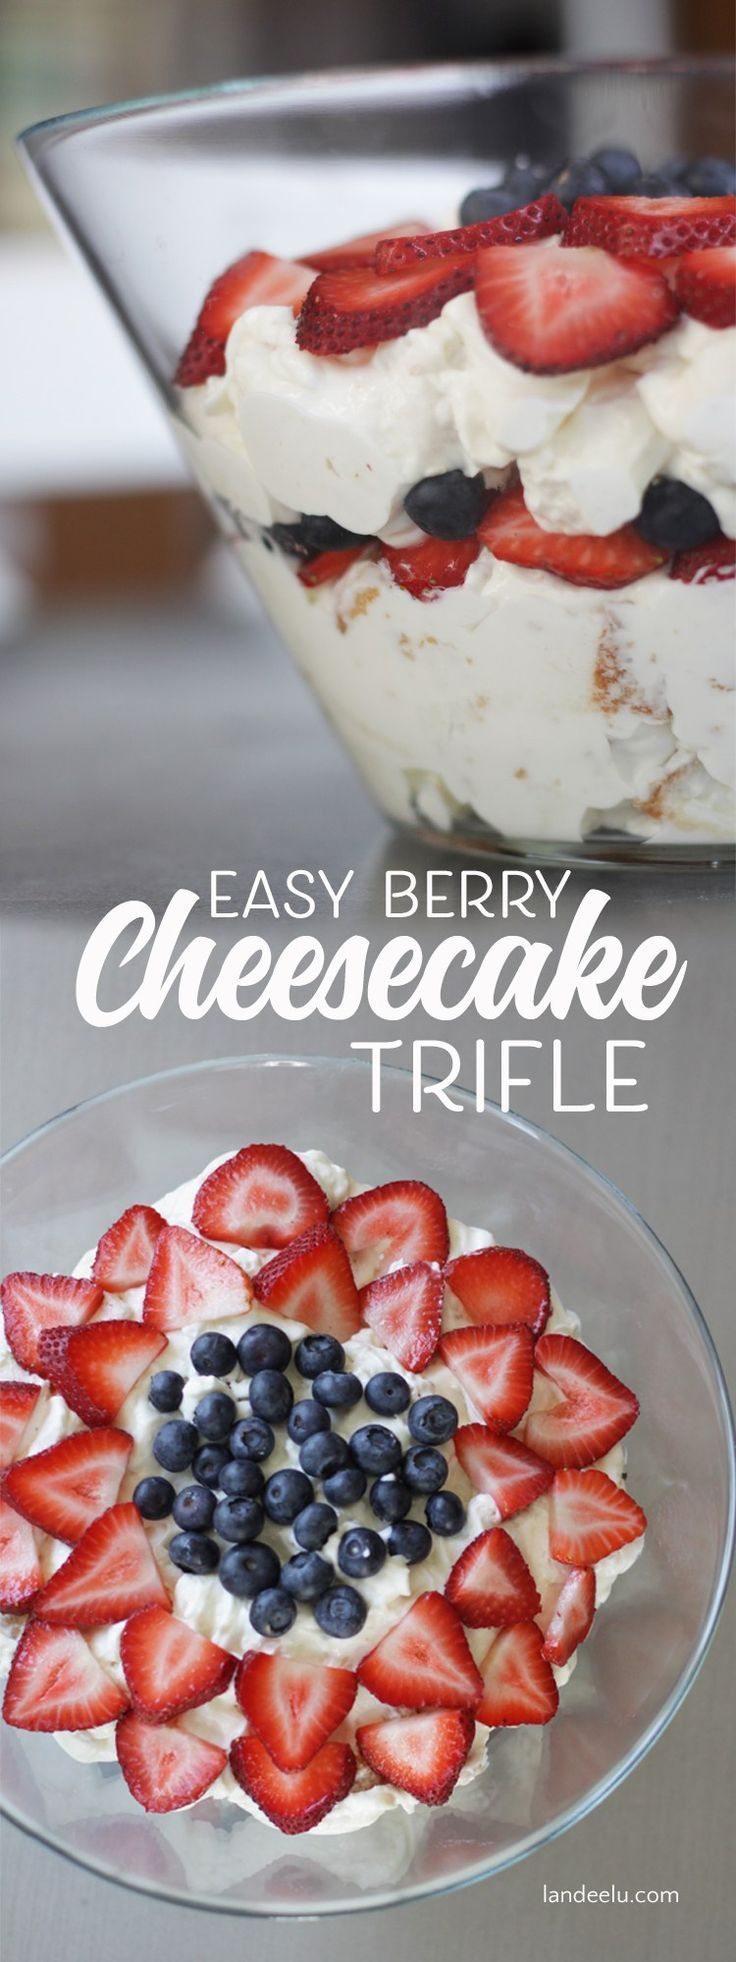 Throw together this delicious trifle recipe! Tastes like a light cheesecake. Top it with whatever you'd like!